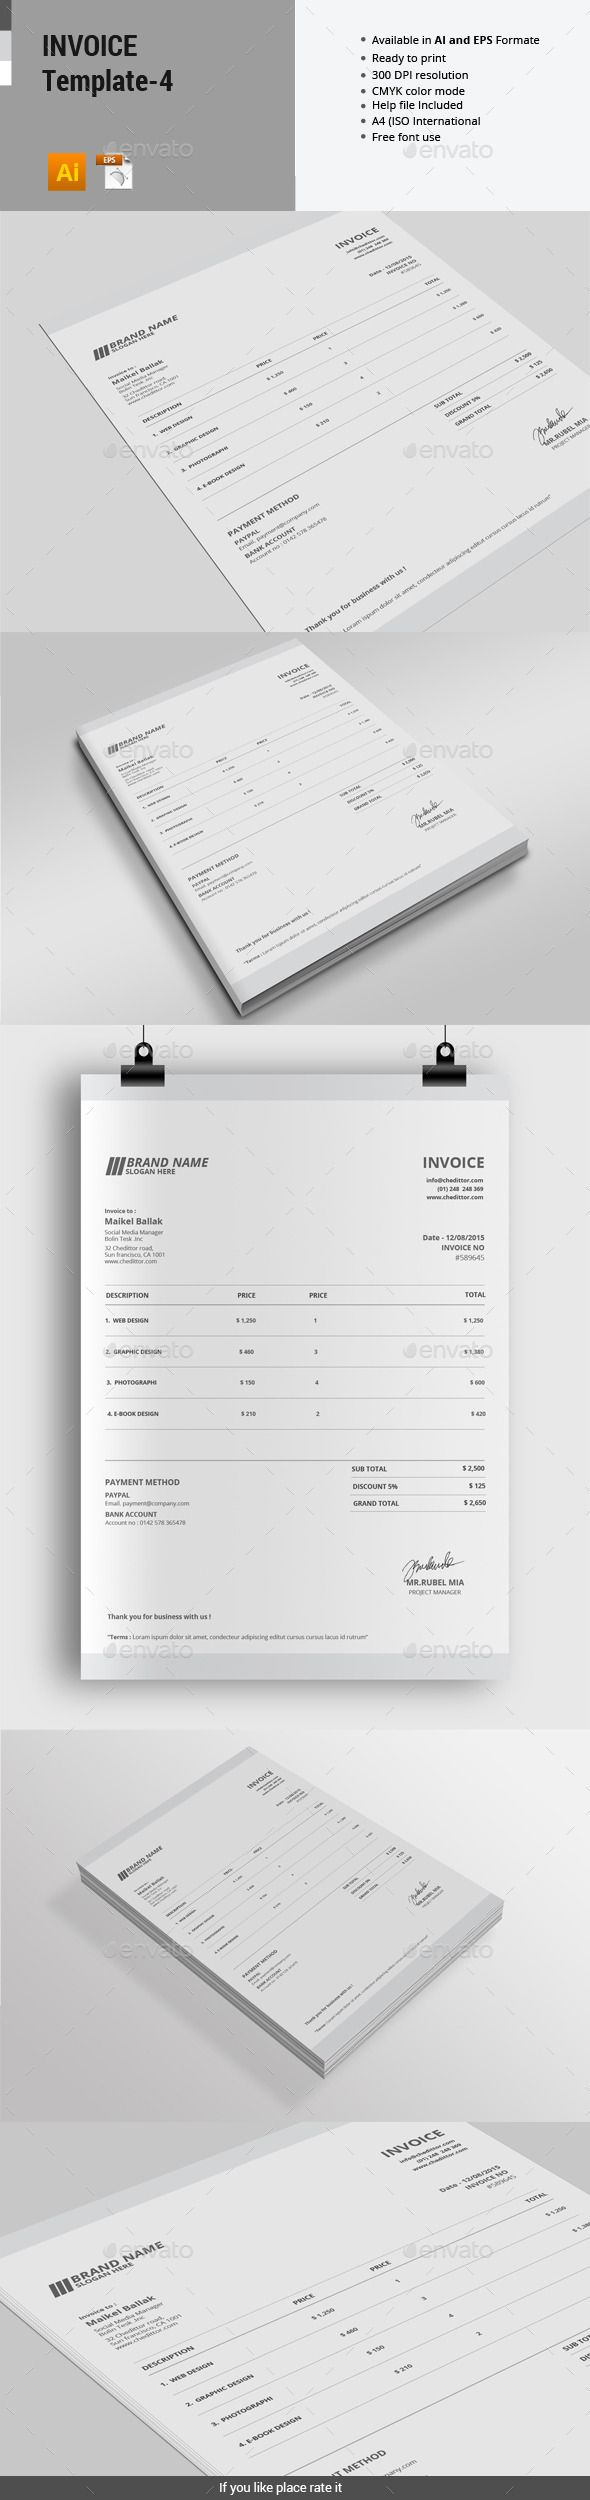 Invoice Template   4   Template and Proposal templates Invoice Template   4 by alimran24 INVOICE BUNDLE Package included 1 Files  Illustrator Ai cs 5